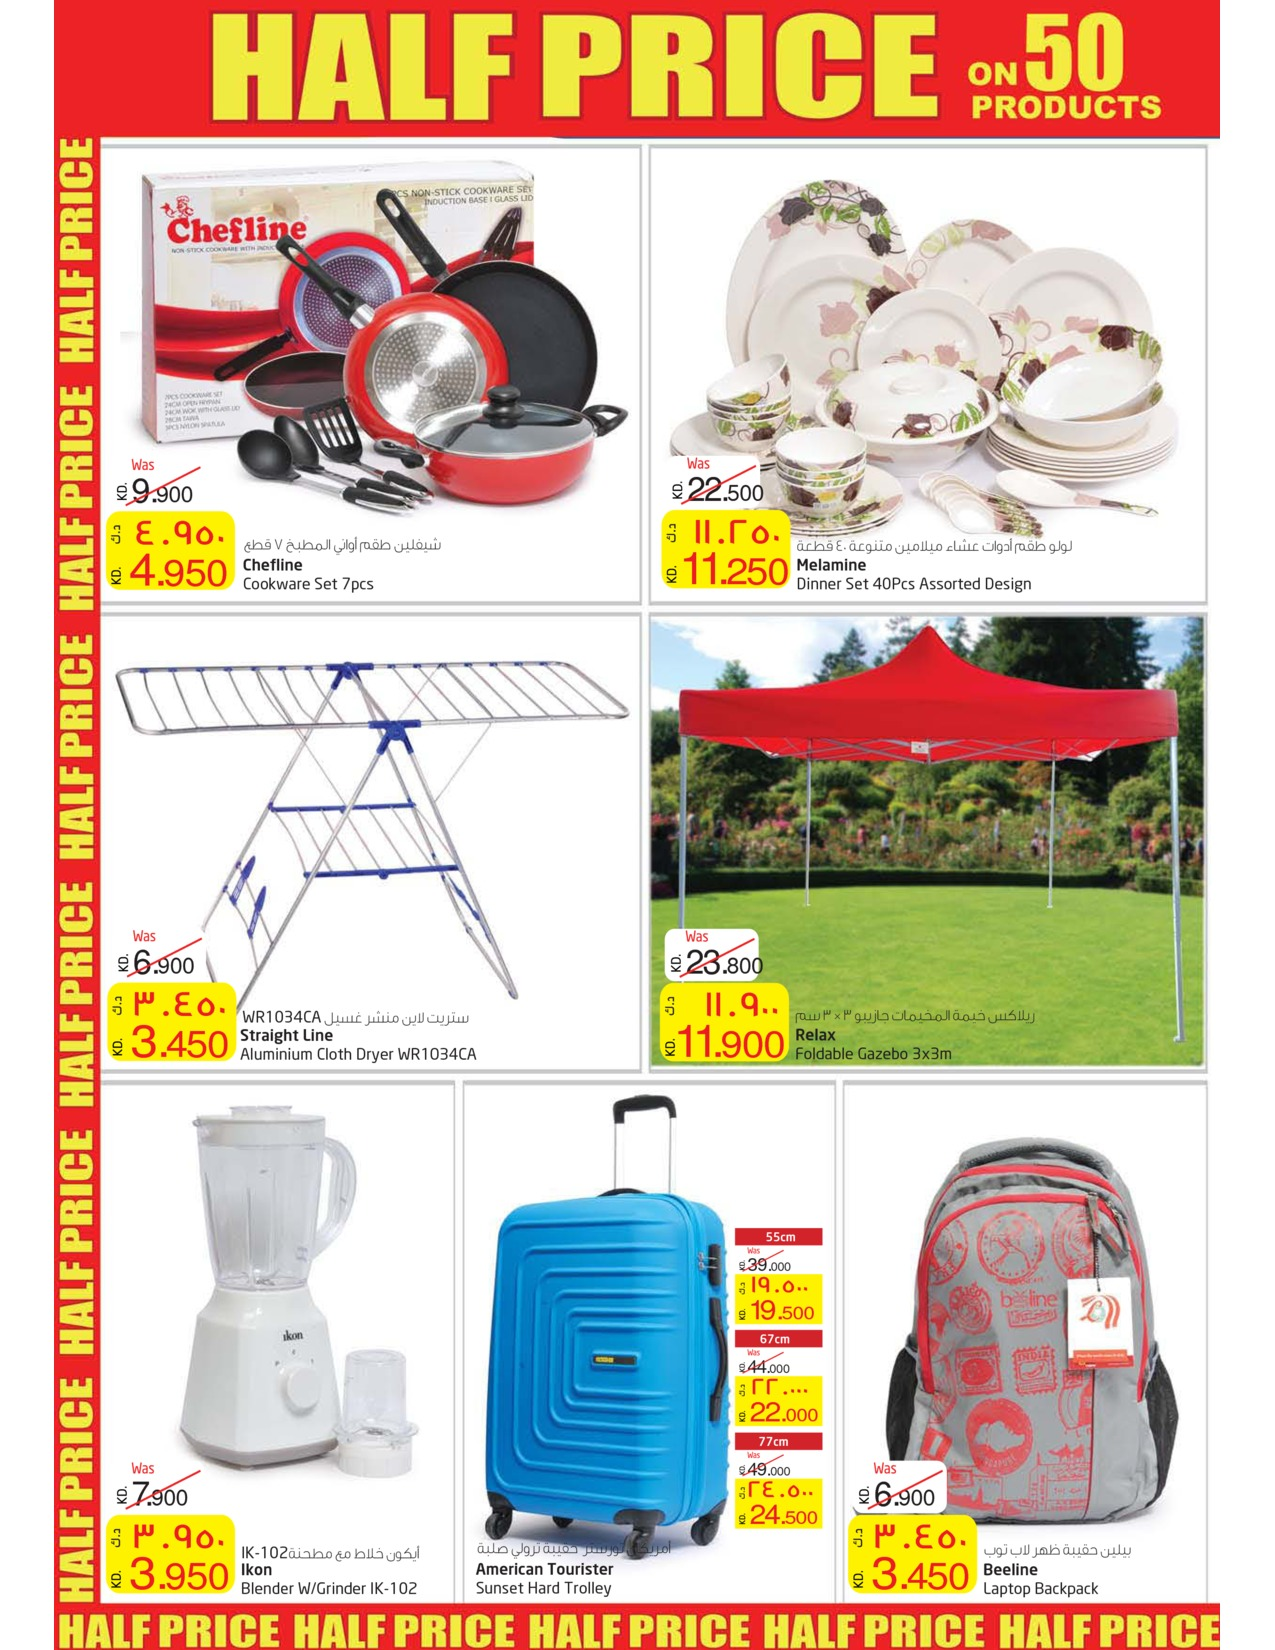 half-price-on-50-products-kuwait